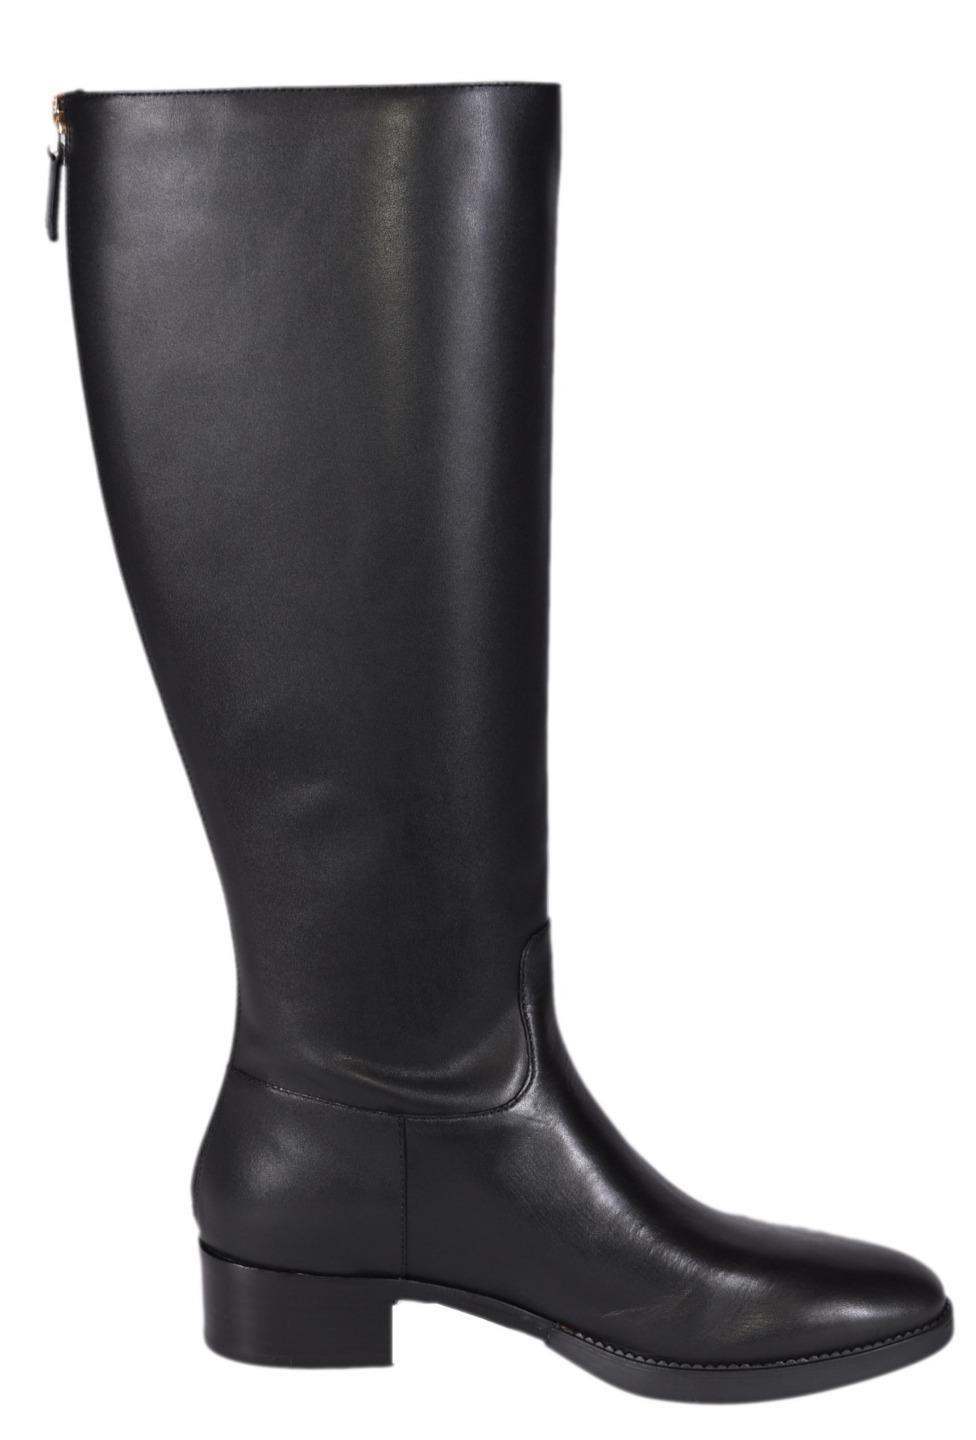 ff922b3aa96 Men s Women s-Tory Burch Black New New New Vegetable Leather Sidney Knee  High Riding